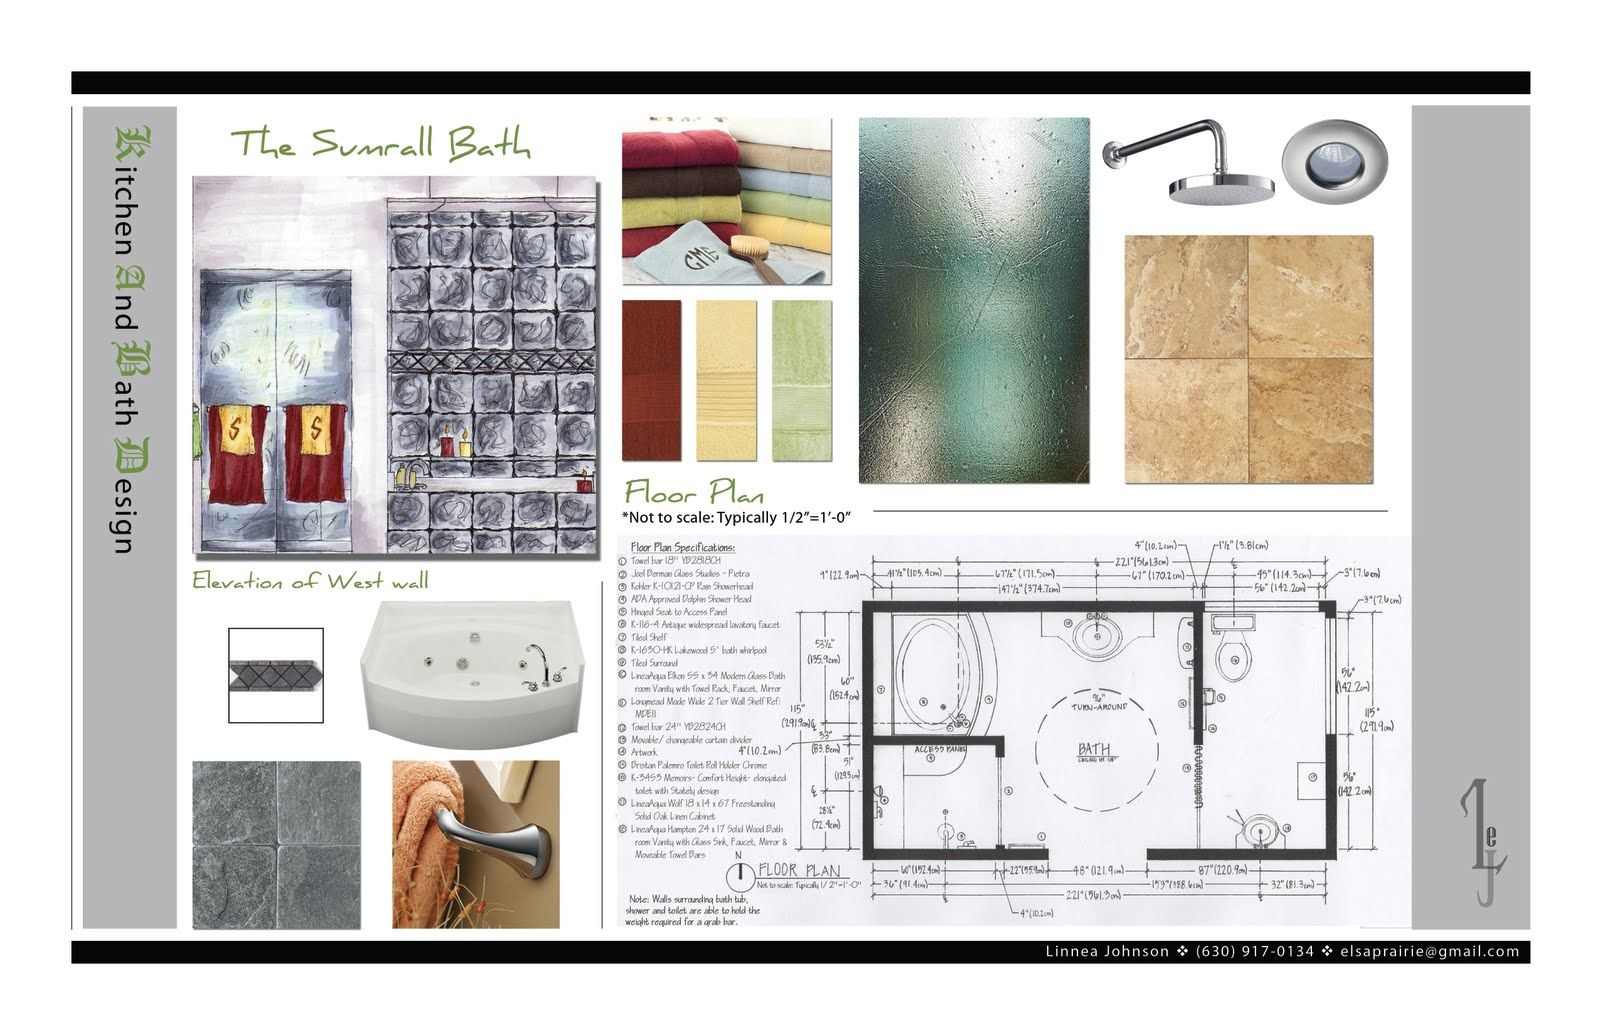 Explore popular nice interior designer portfolio design examples concepts from kathryn perez to redesign your living area also best lala images on pinterest architectural drawings rh